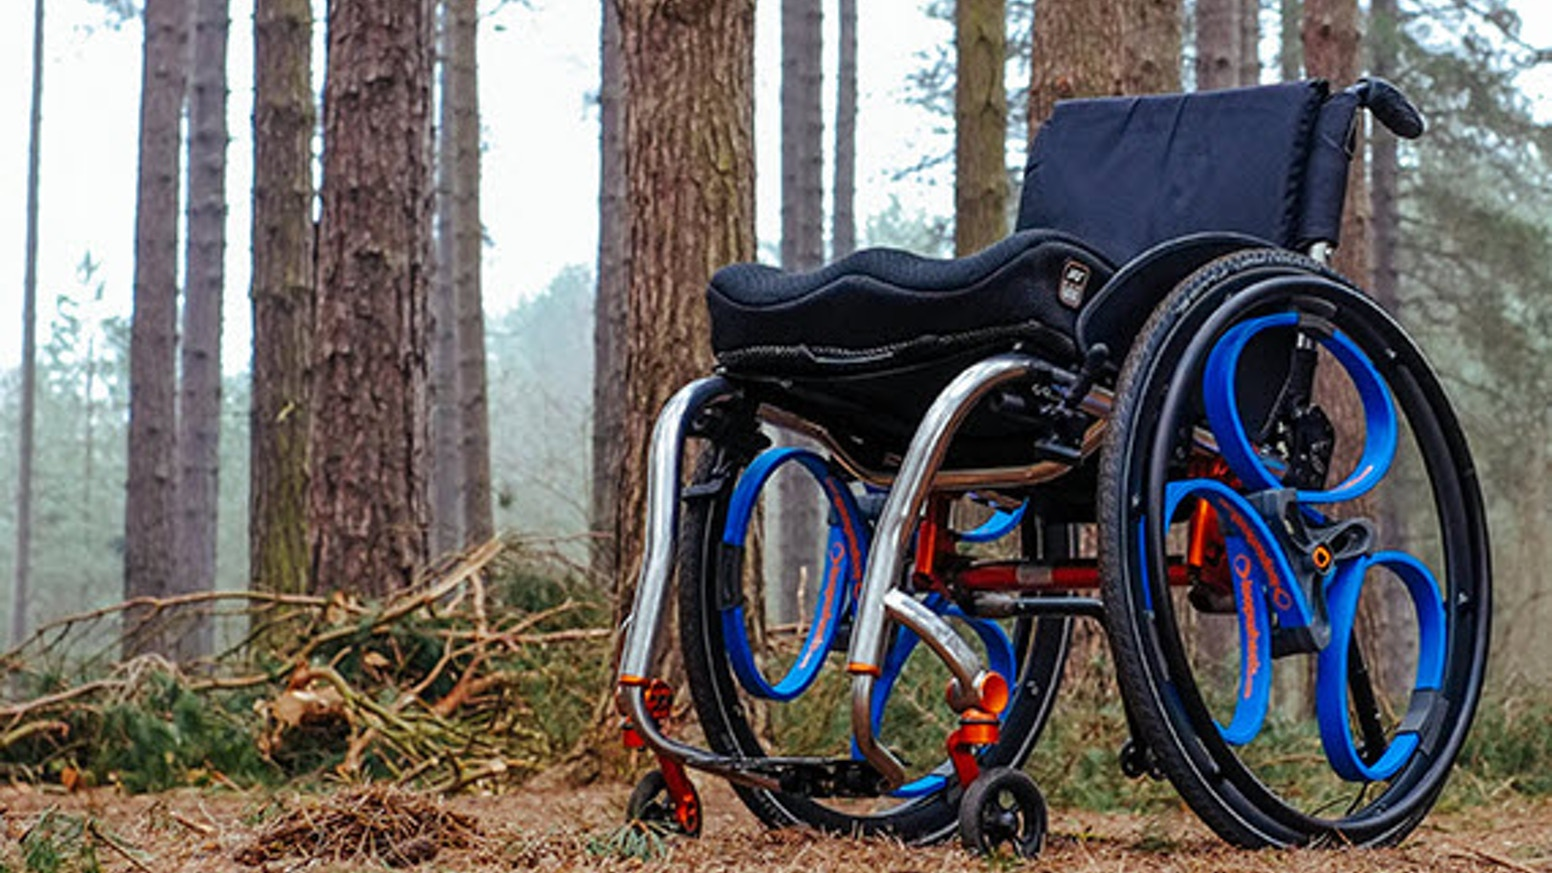 Wheelchair wheels with integral suspension, helping you lead an active life more comfortably and with less effort.